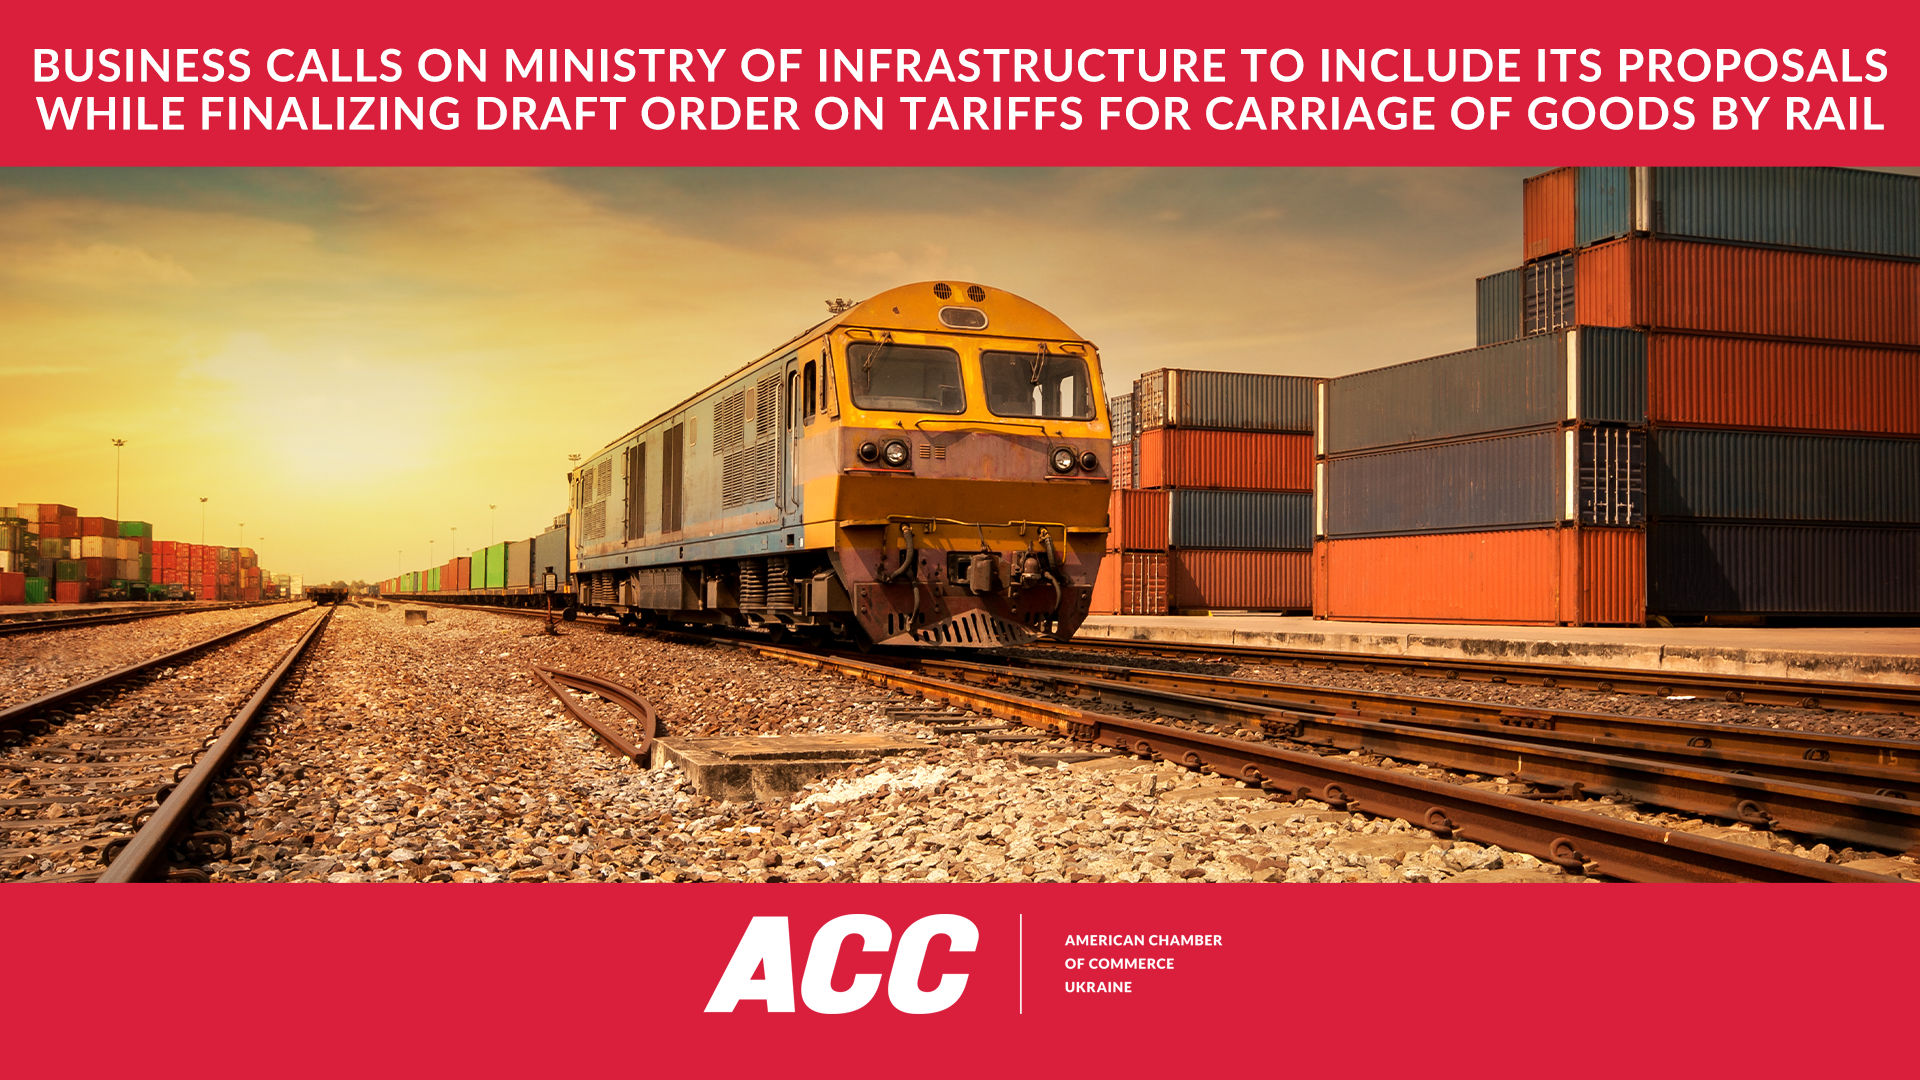 Business Calls on Ministry of Infrastructure to Include its Proposals while Finalizing Draft Order on Tariffs for Carriage of Goods by Rail